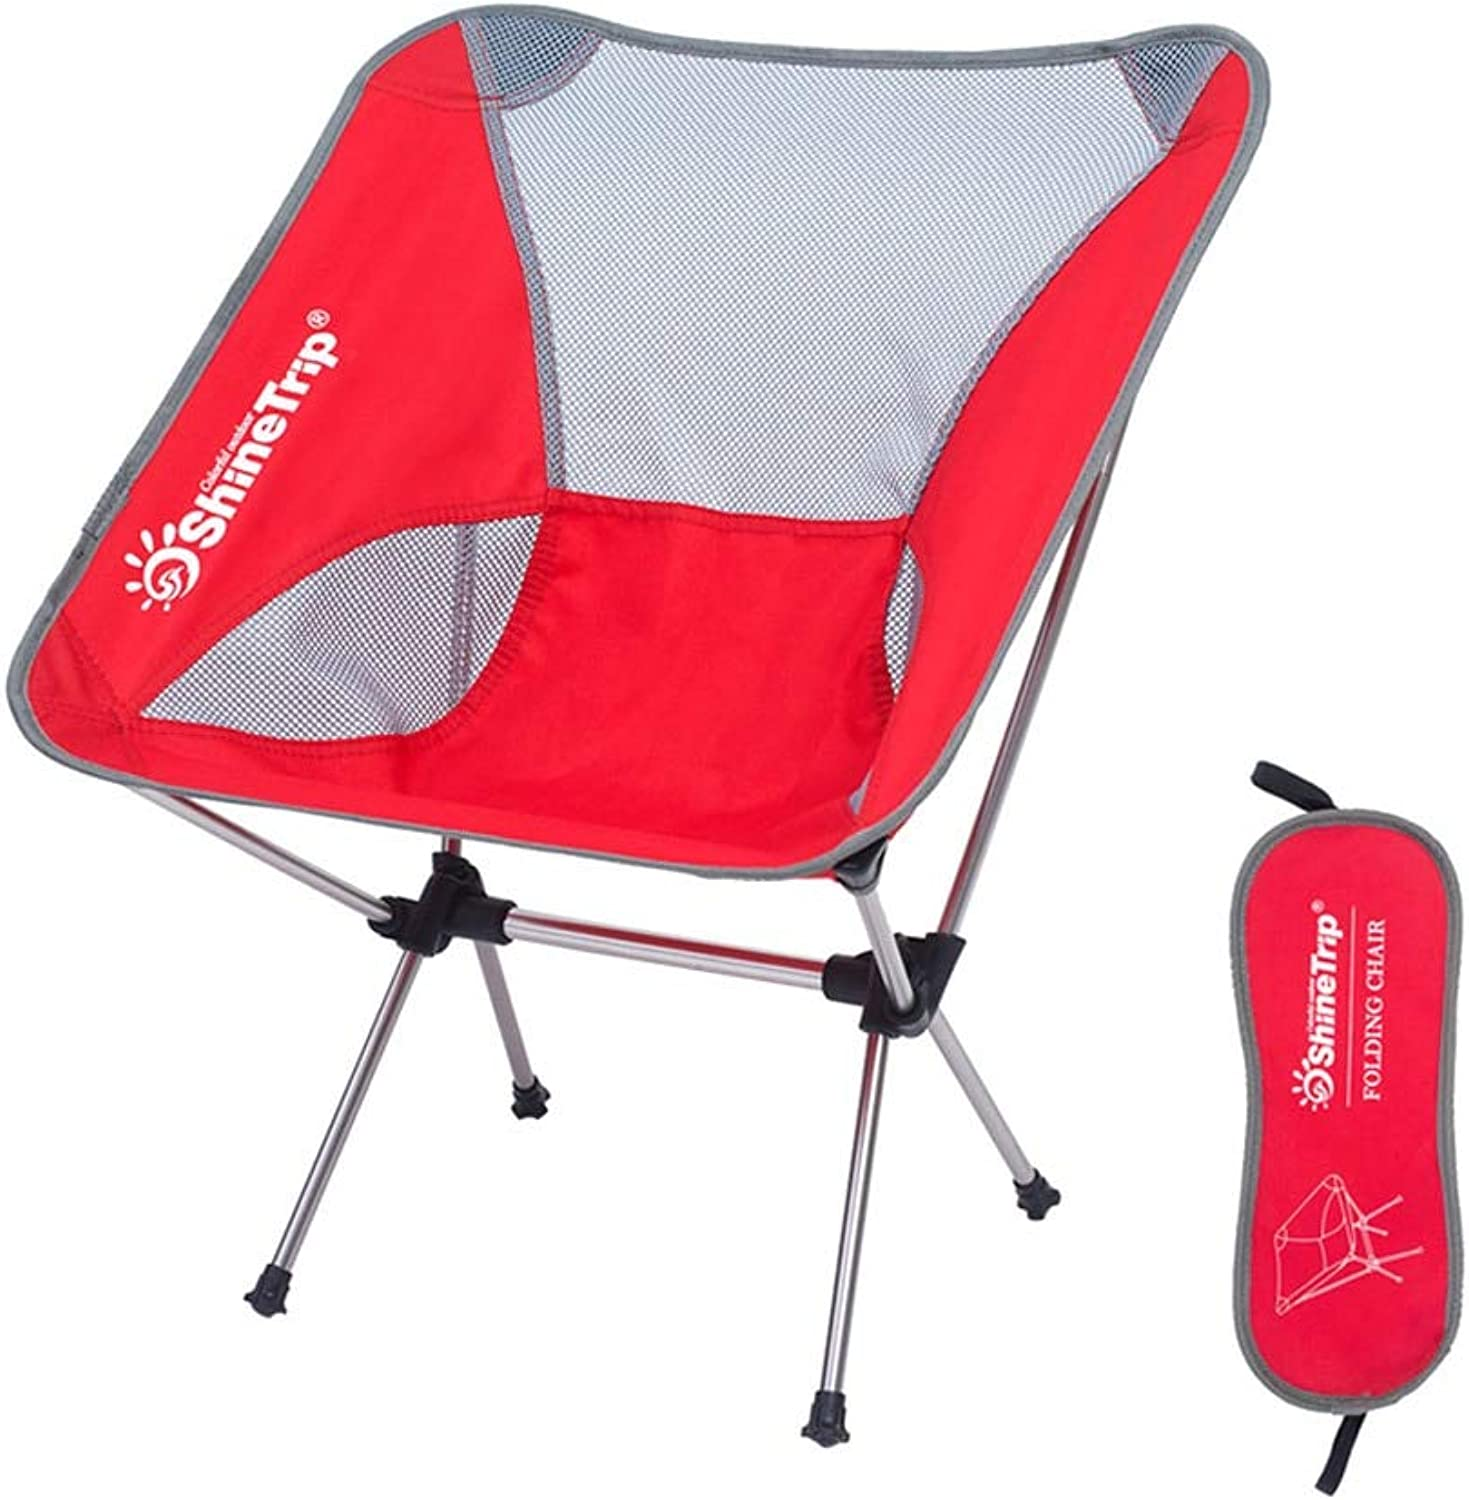 2 pcs of New Outlife Ultra Light Folding Fishing Chair Seat for Outdoor Foldable Camping Leisure Picnic Beach Chair Other Fishing Tools